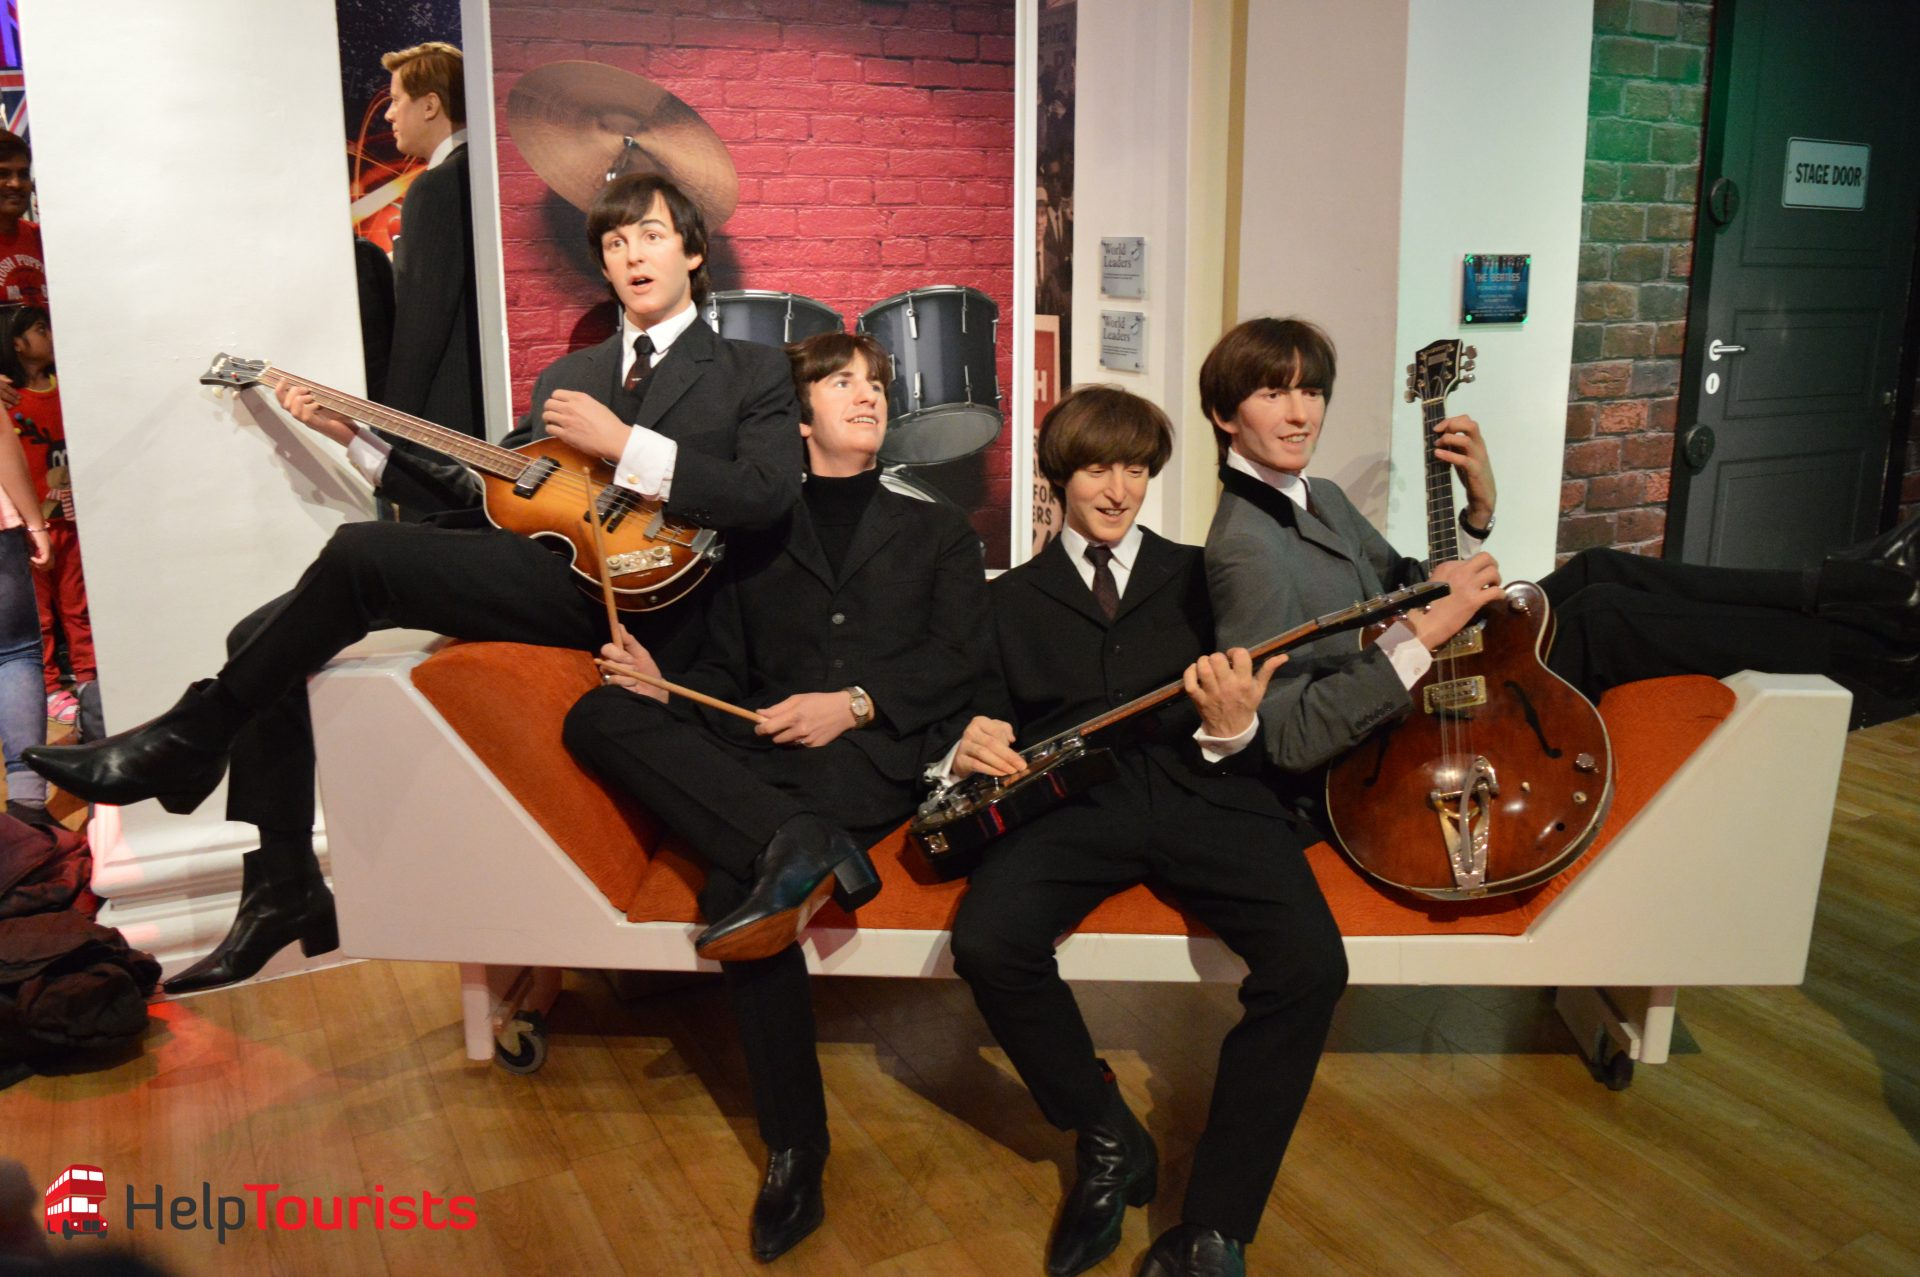 Madame Tussaud's London the Beatles